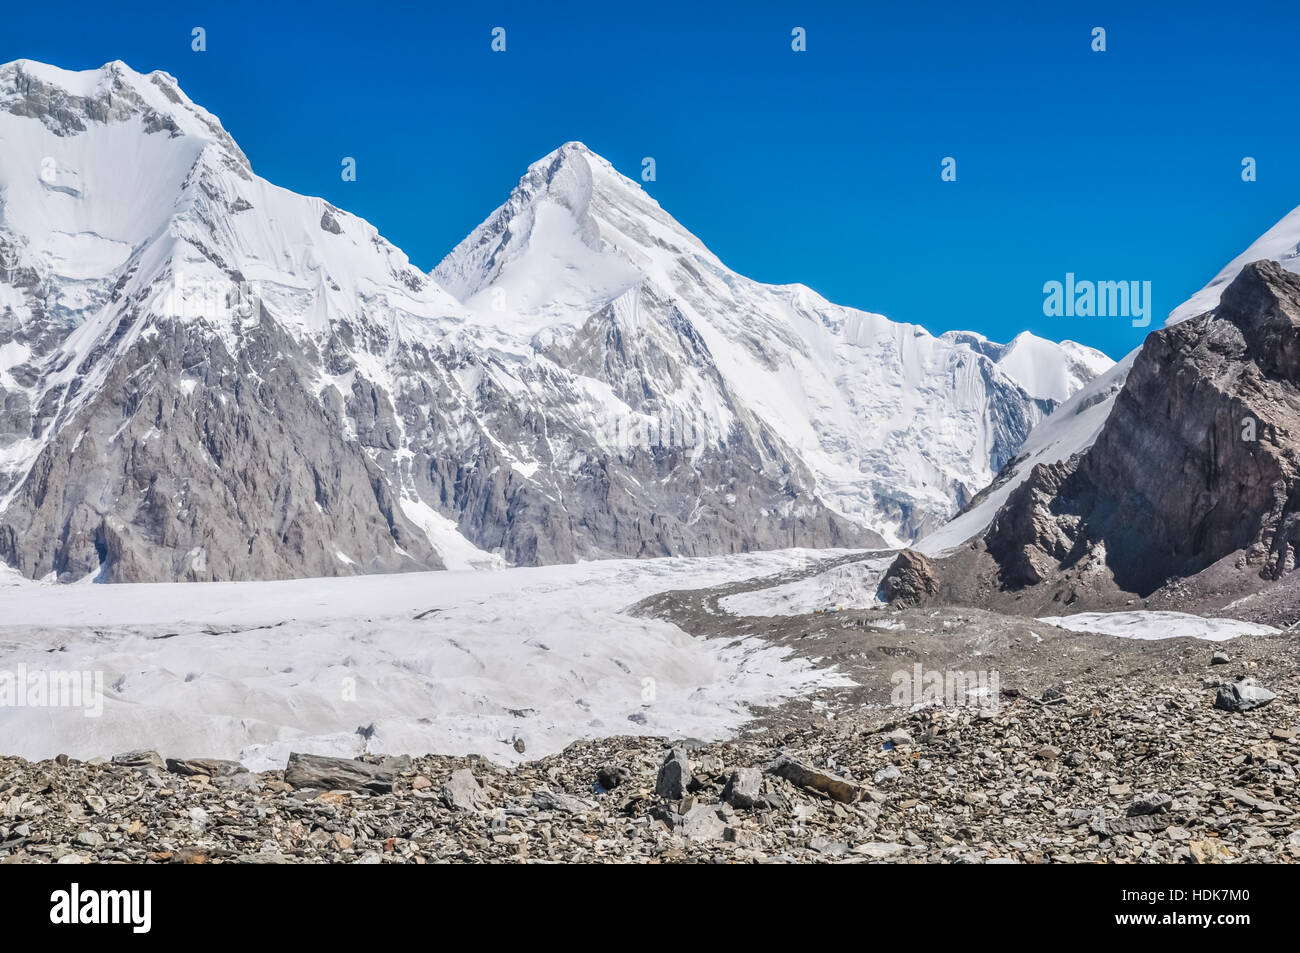 Photo of rocky mountains with snowy tops near South Inylcheck Glaciar in Kyrgystan. - Stock Image